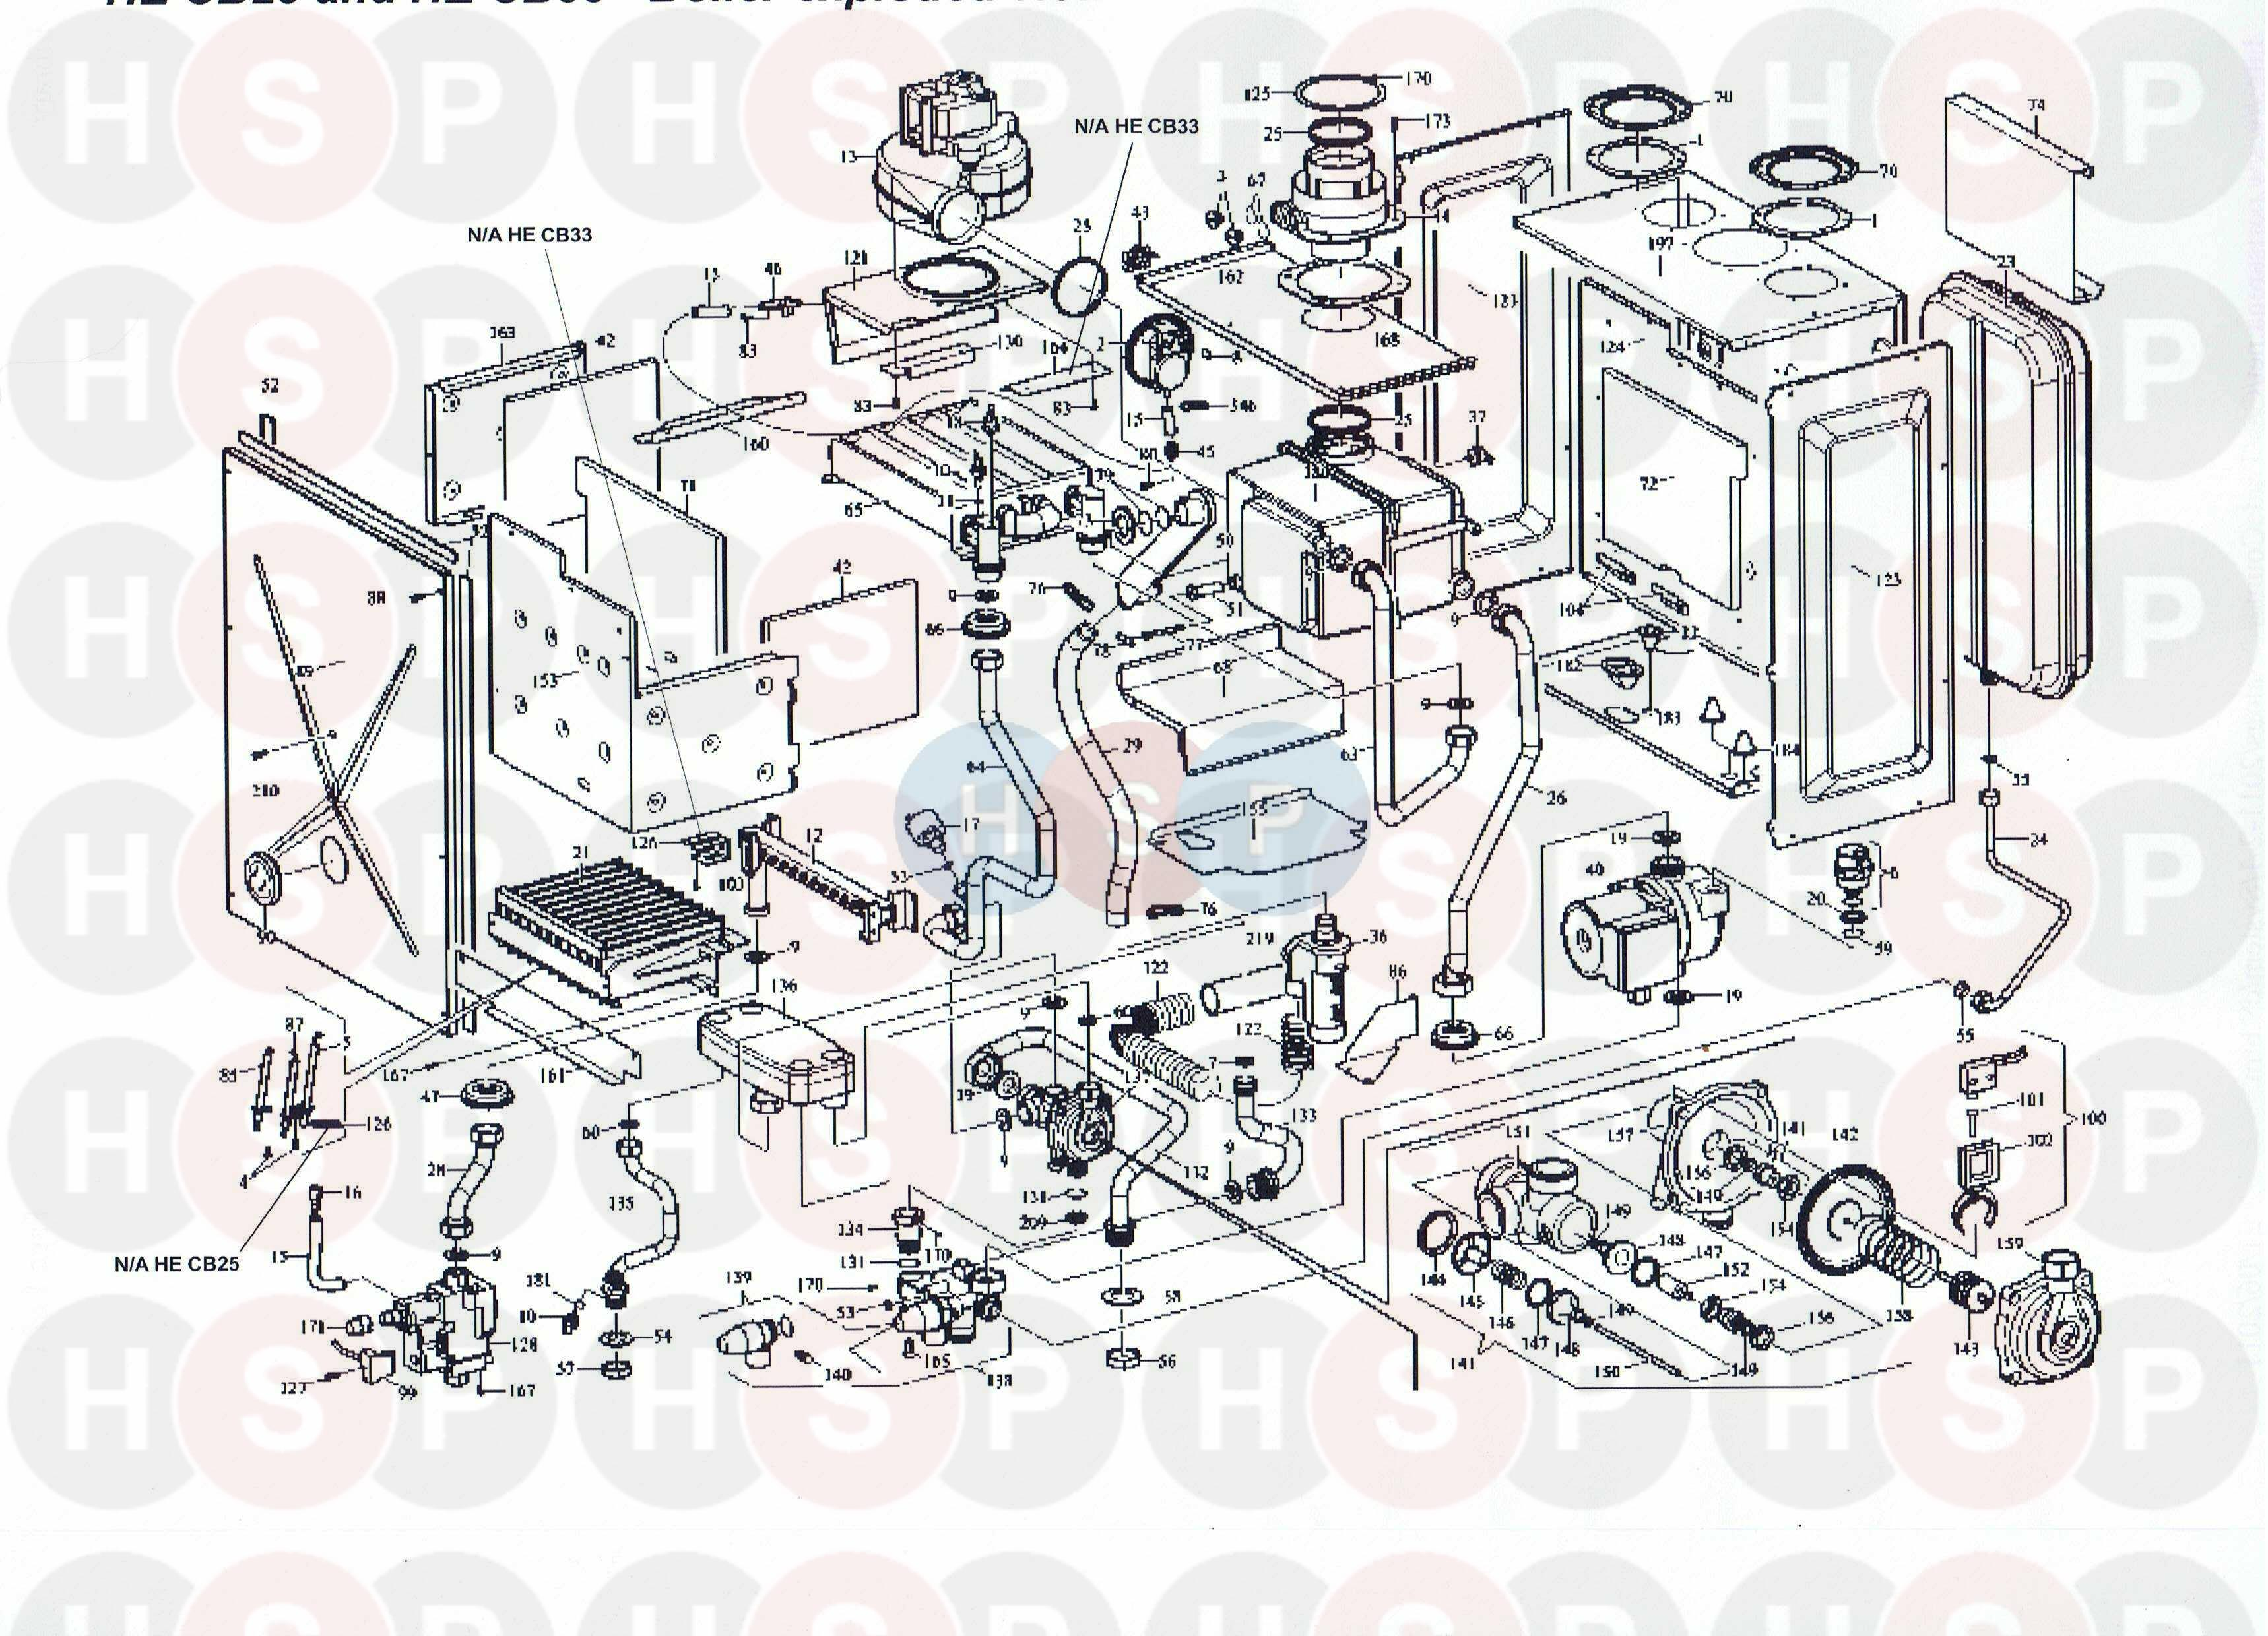 Alpha He Cb 25 Boiler Assembly Diagram Heating Spare Parts Cb50 Wiring For